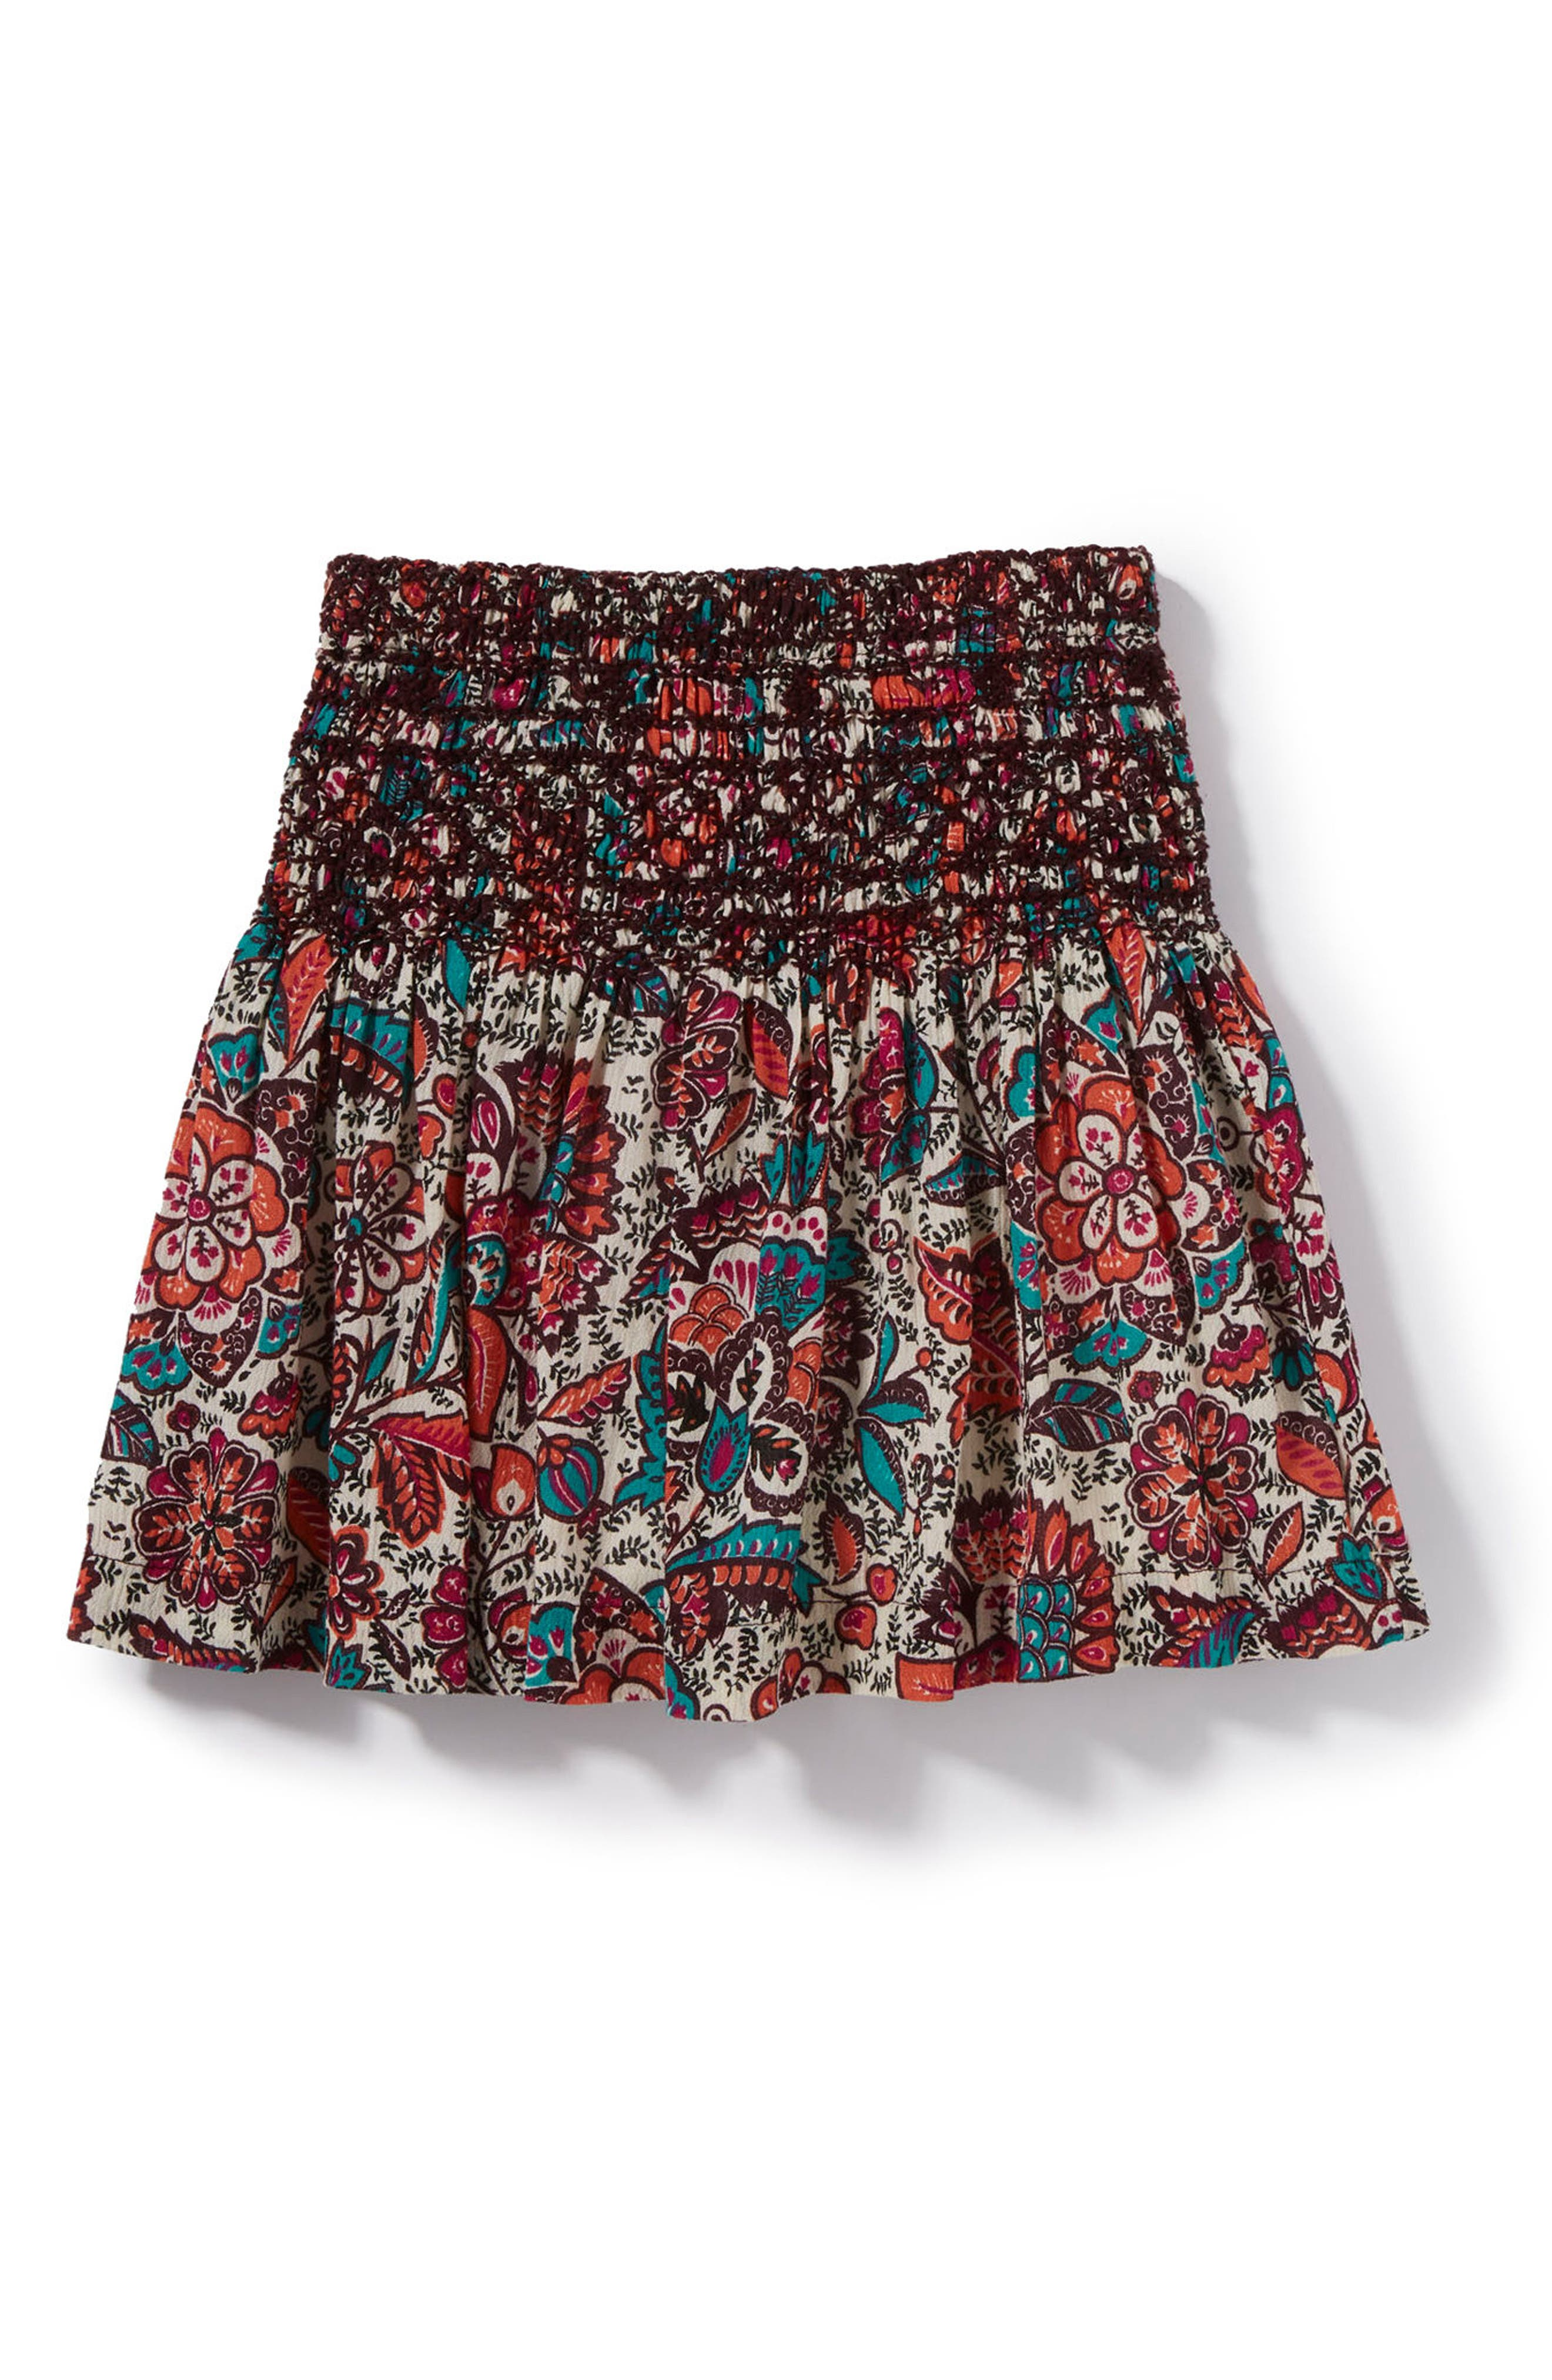 Alternate Image 1 Selected - Peek Pixie Print Skirt (Toddler Girls, Little Girls & Big Girls)